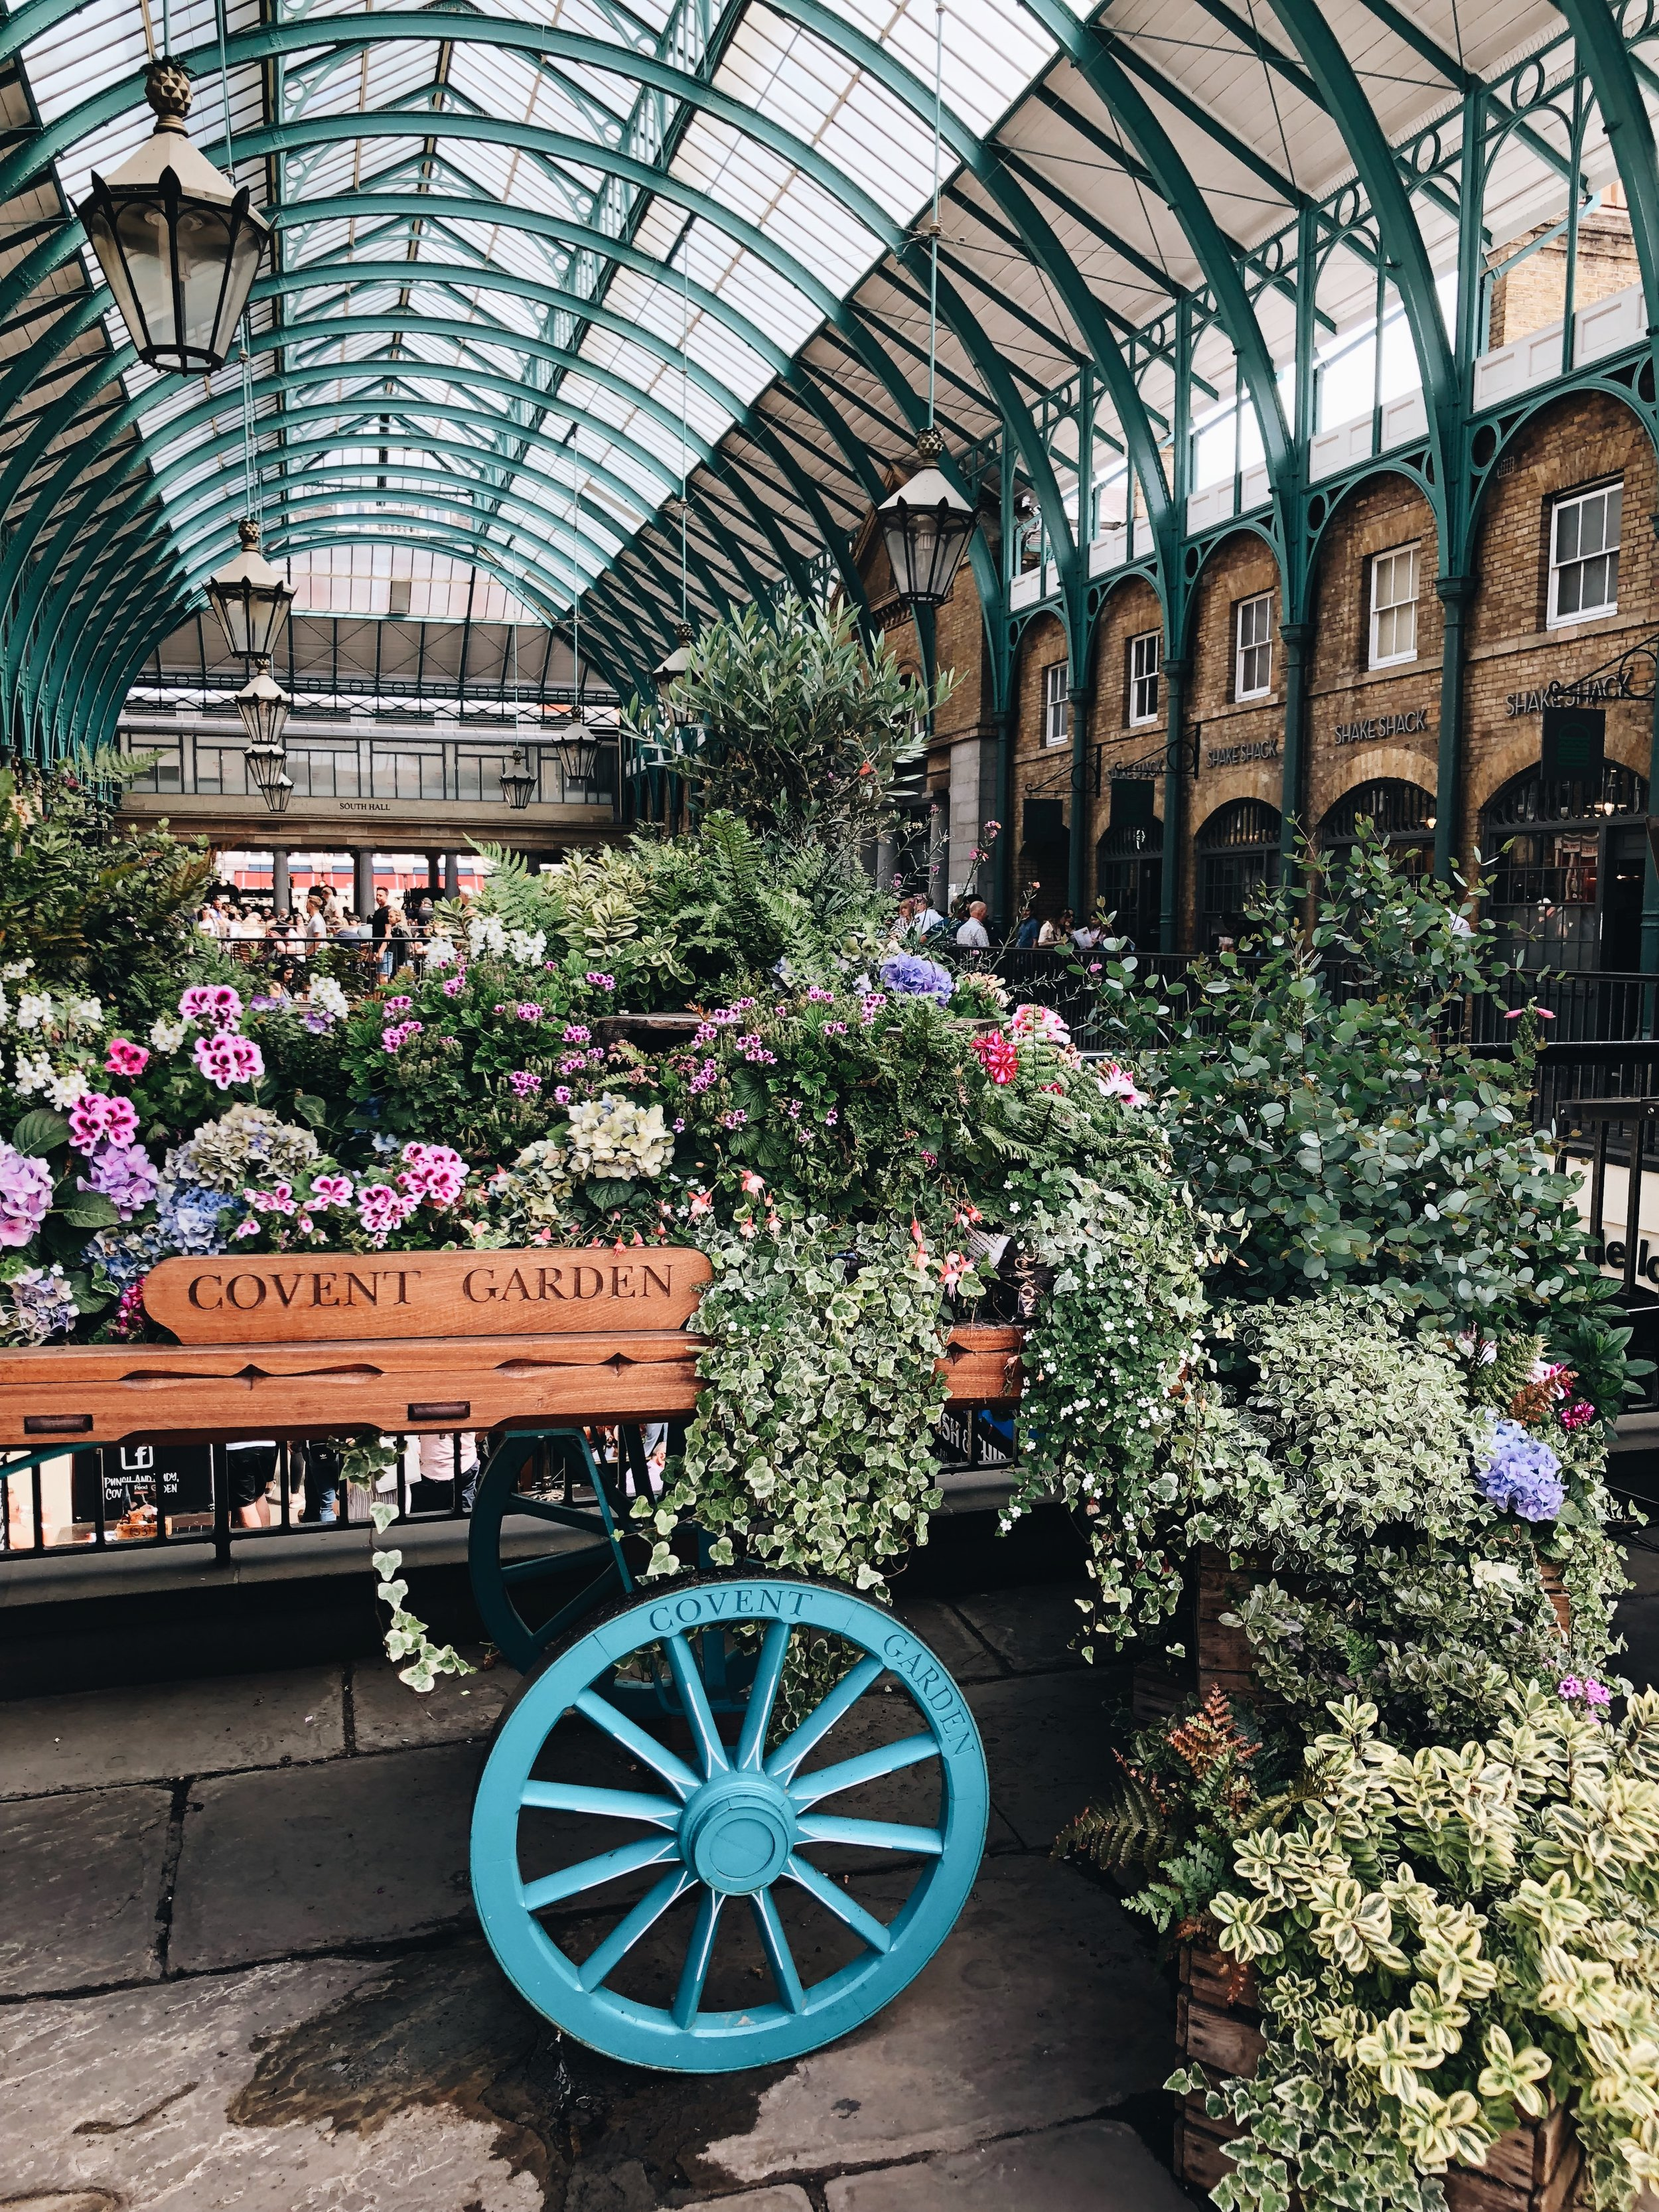 Beautiful flowers at Covent Garden